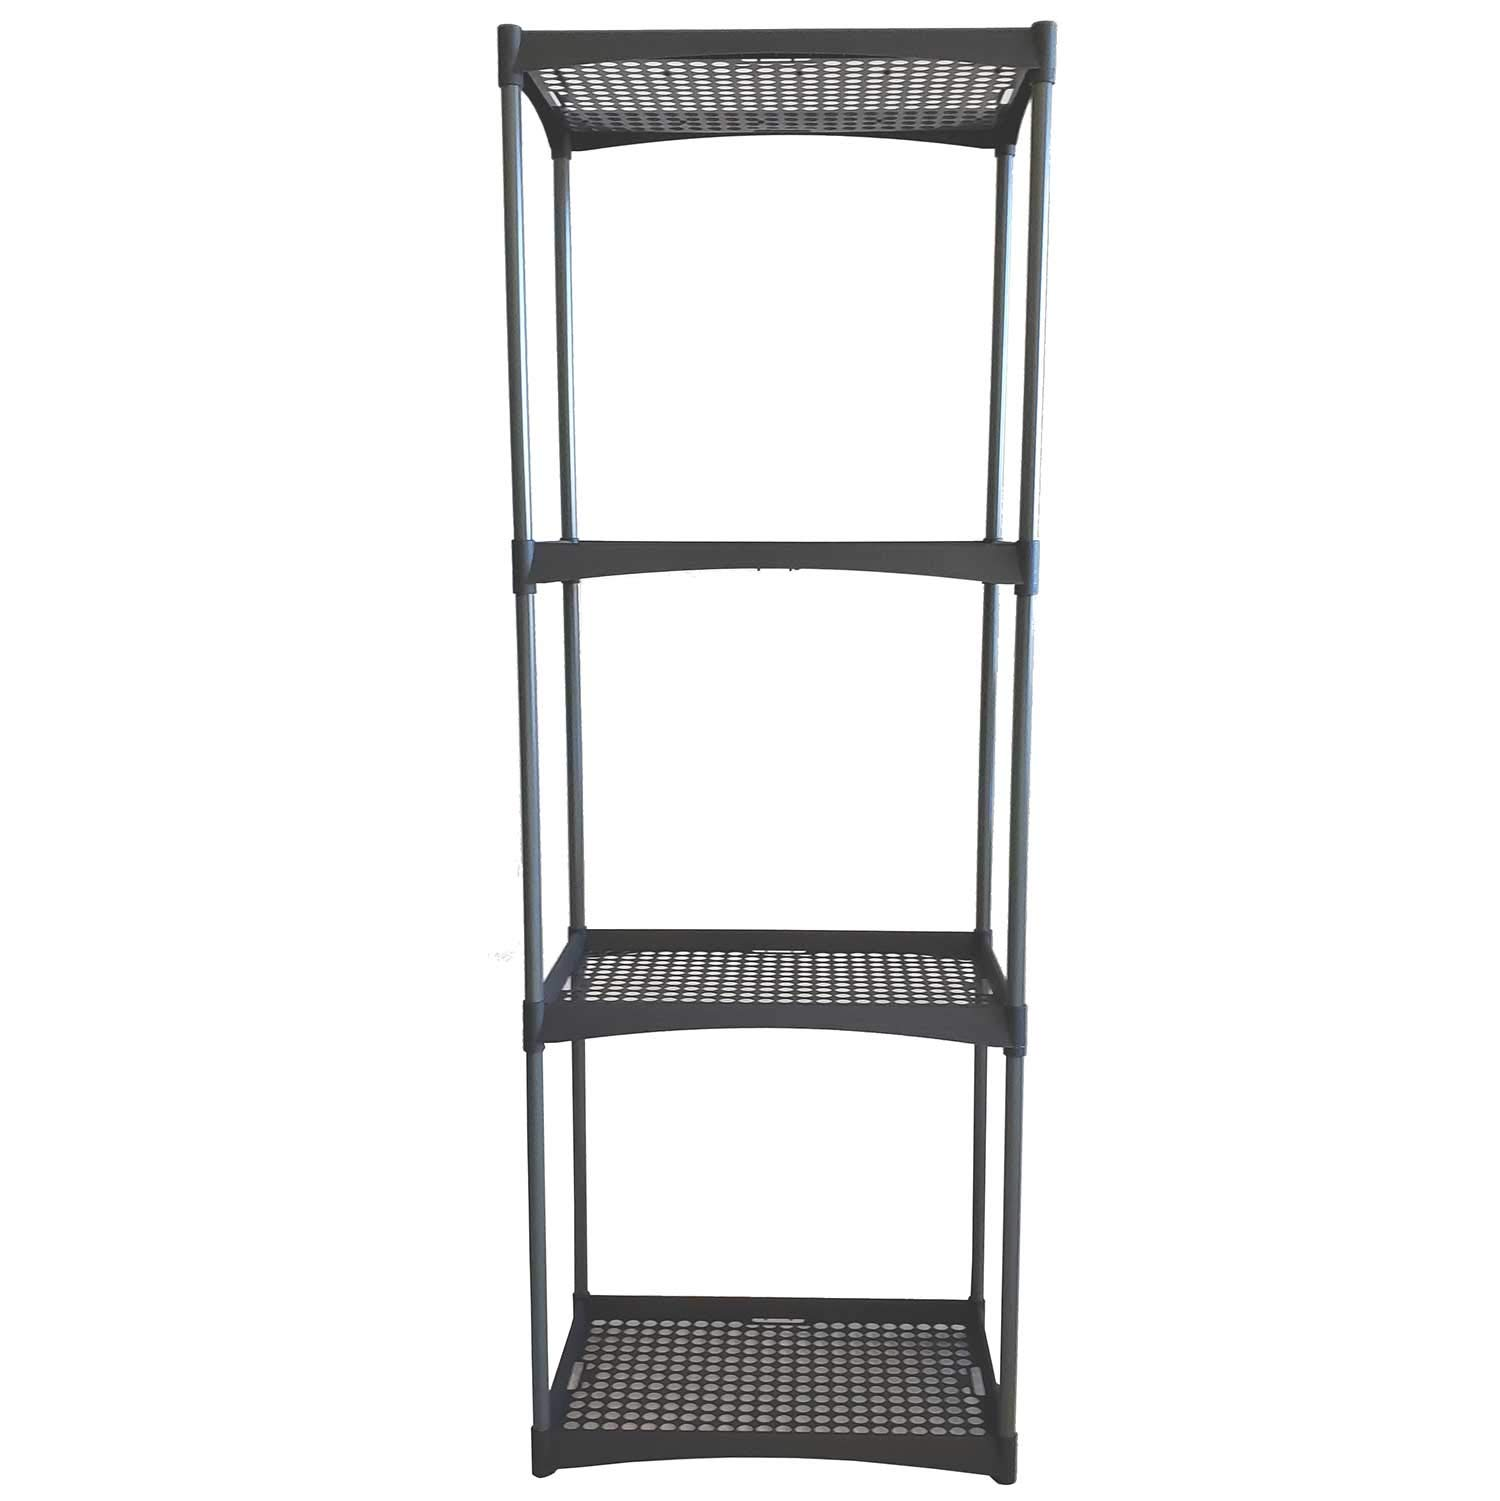 Heavy Duty 4 Tier Garage Outdoor Plastic Interlocking Utility Storage Shelving Unit with Wall Brackets, Black (1)